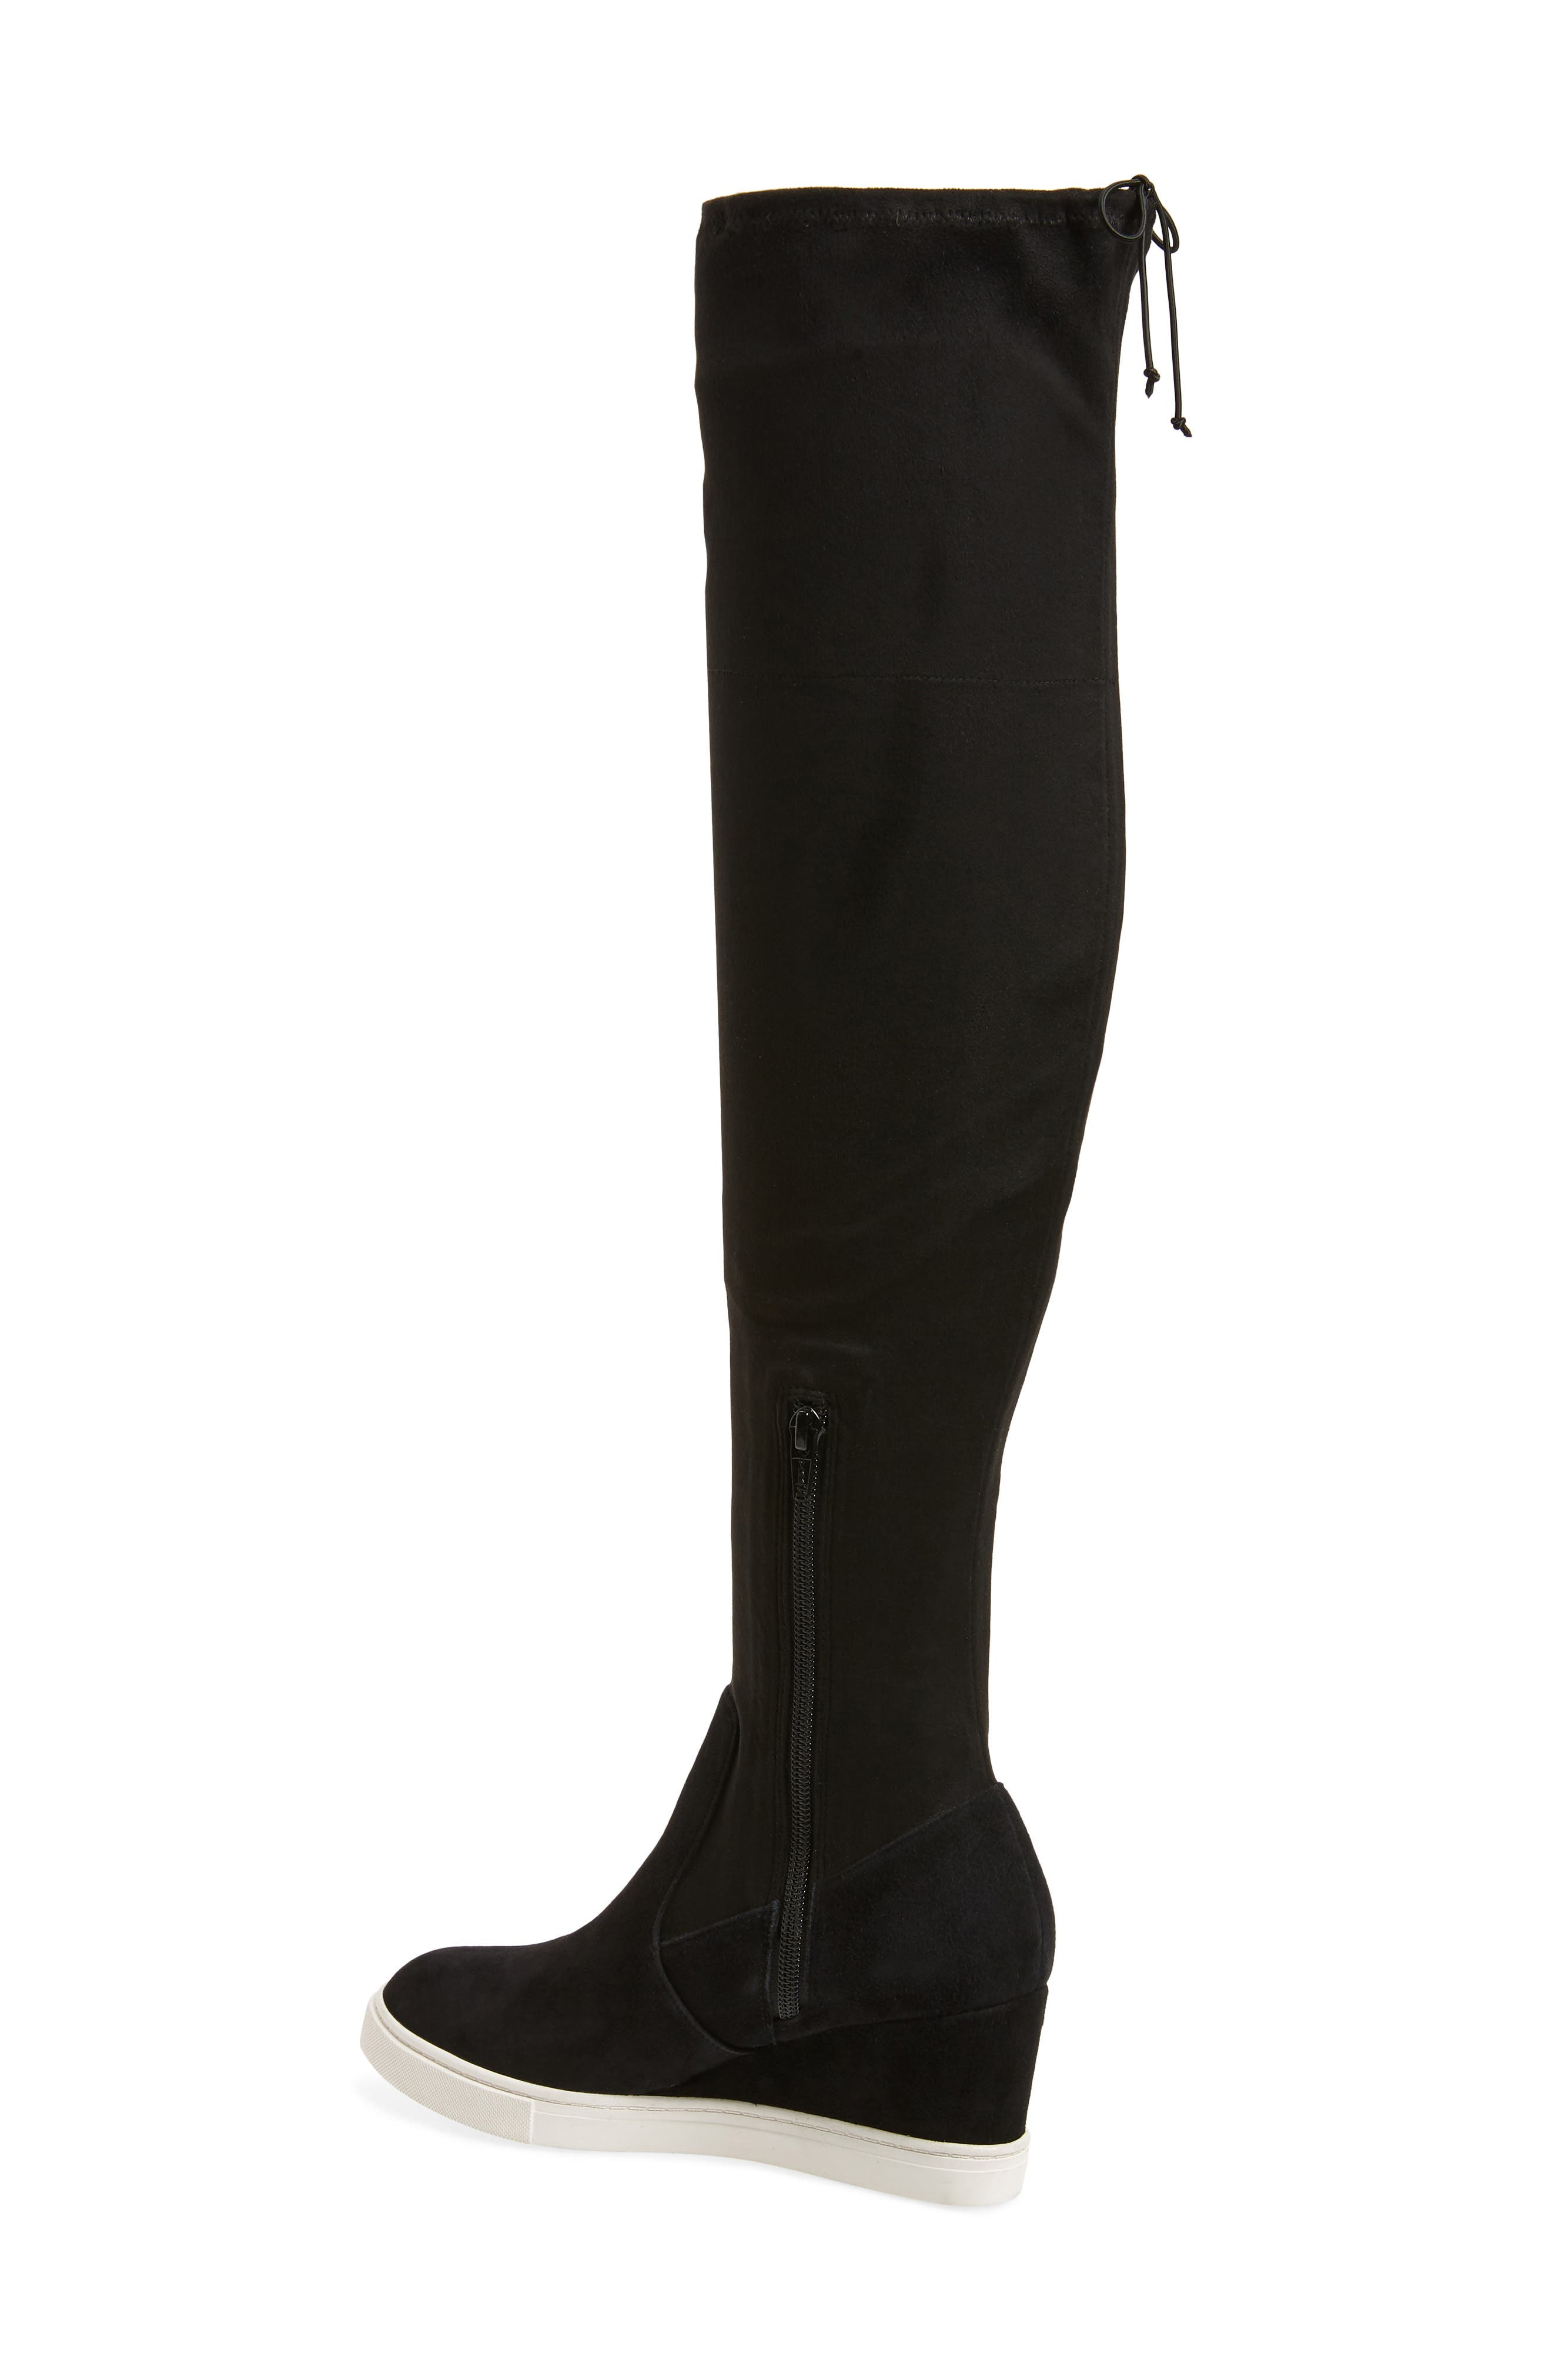 Thea Over the Knee Boot,                             Alternate thumbnail 2, color,                             BLACK EMBROIDERY FABRIC